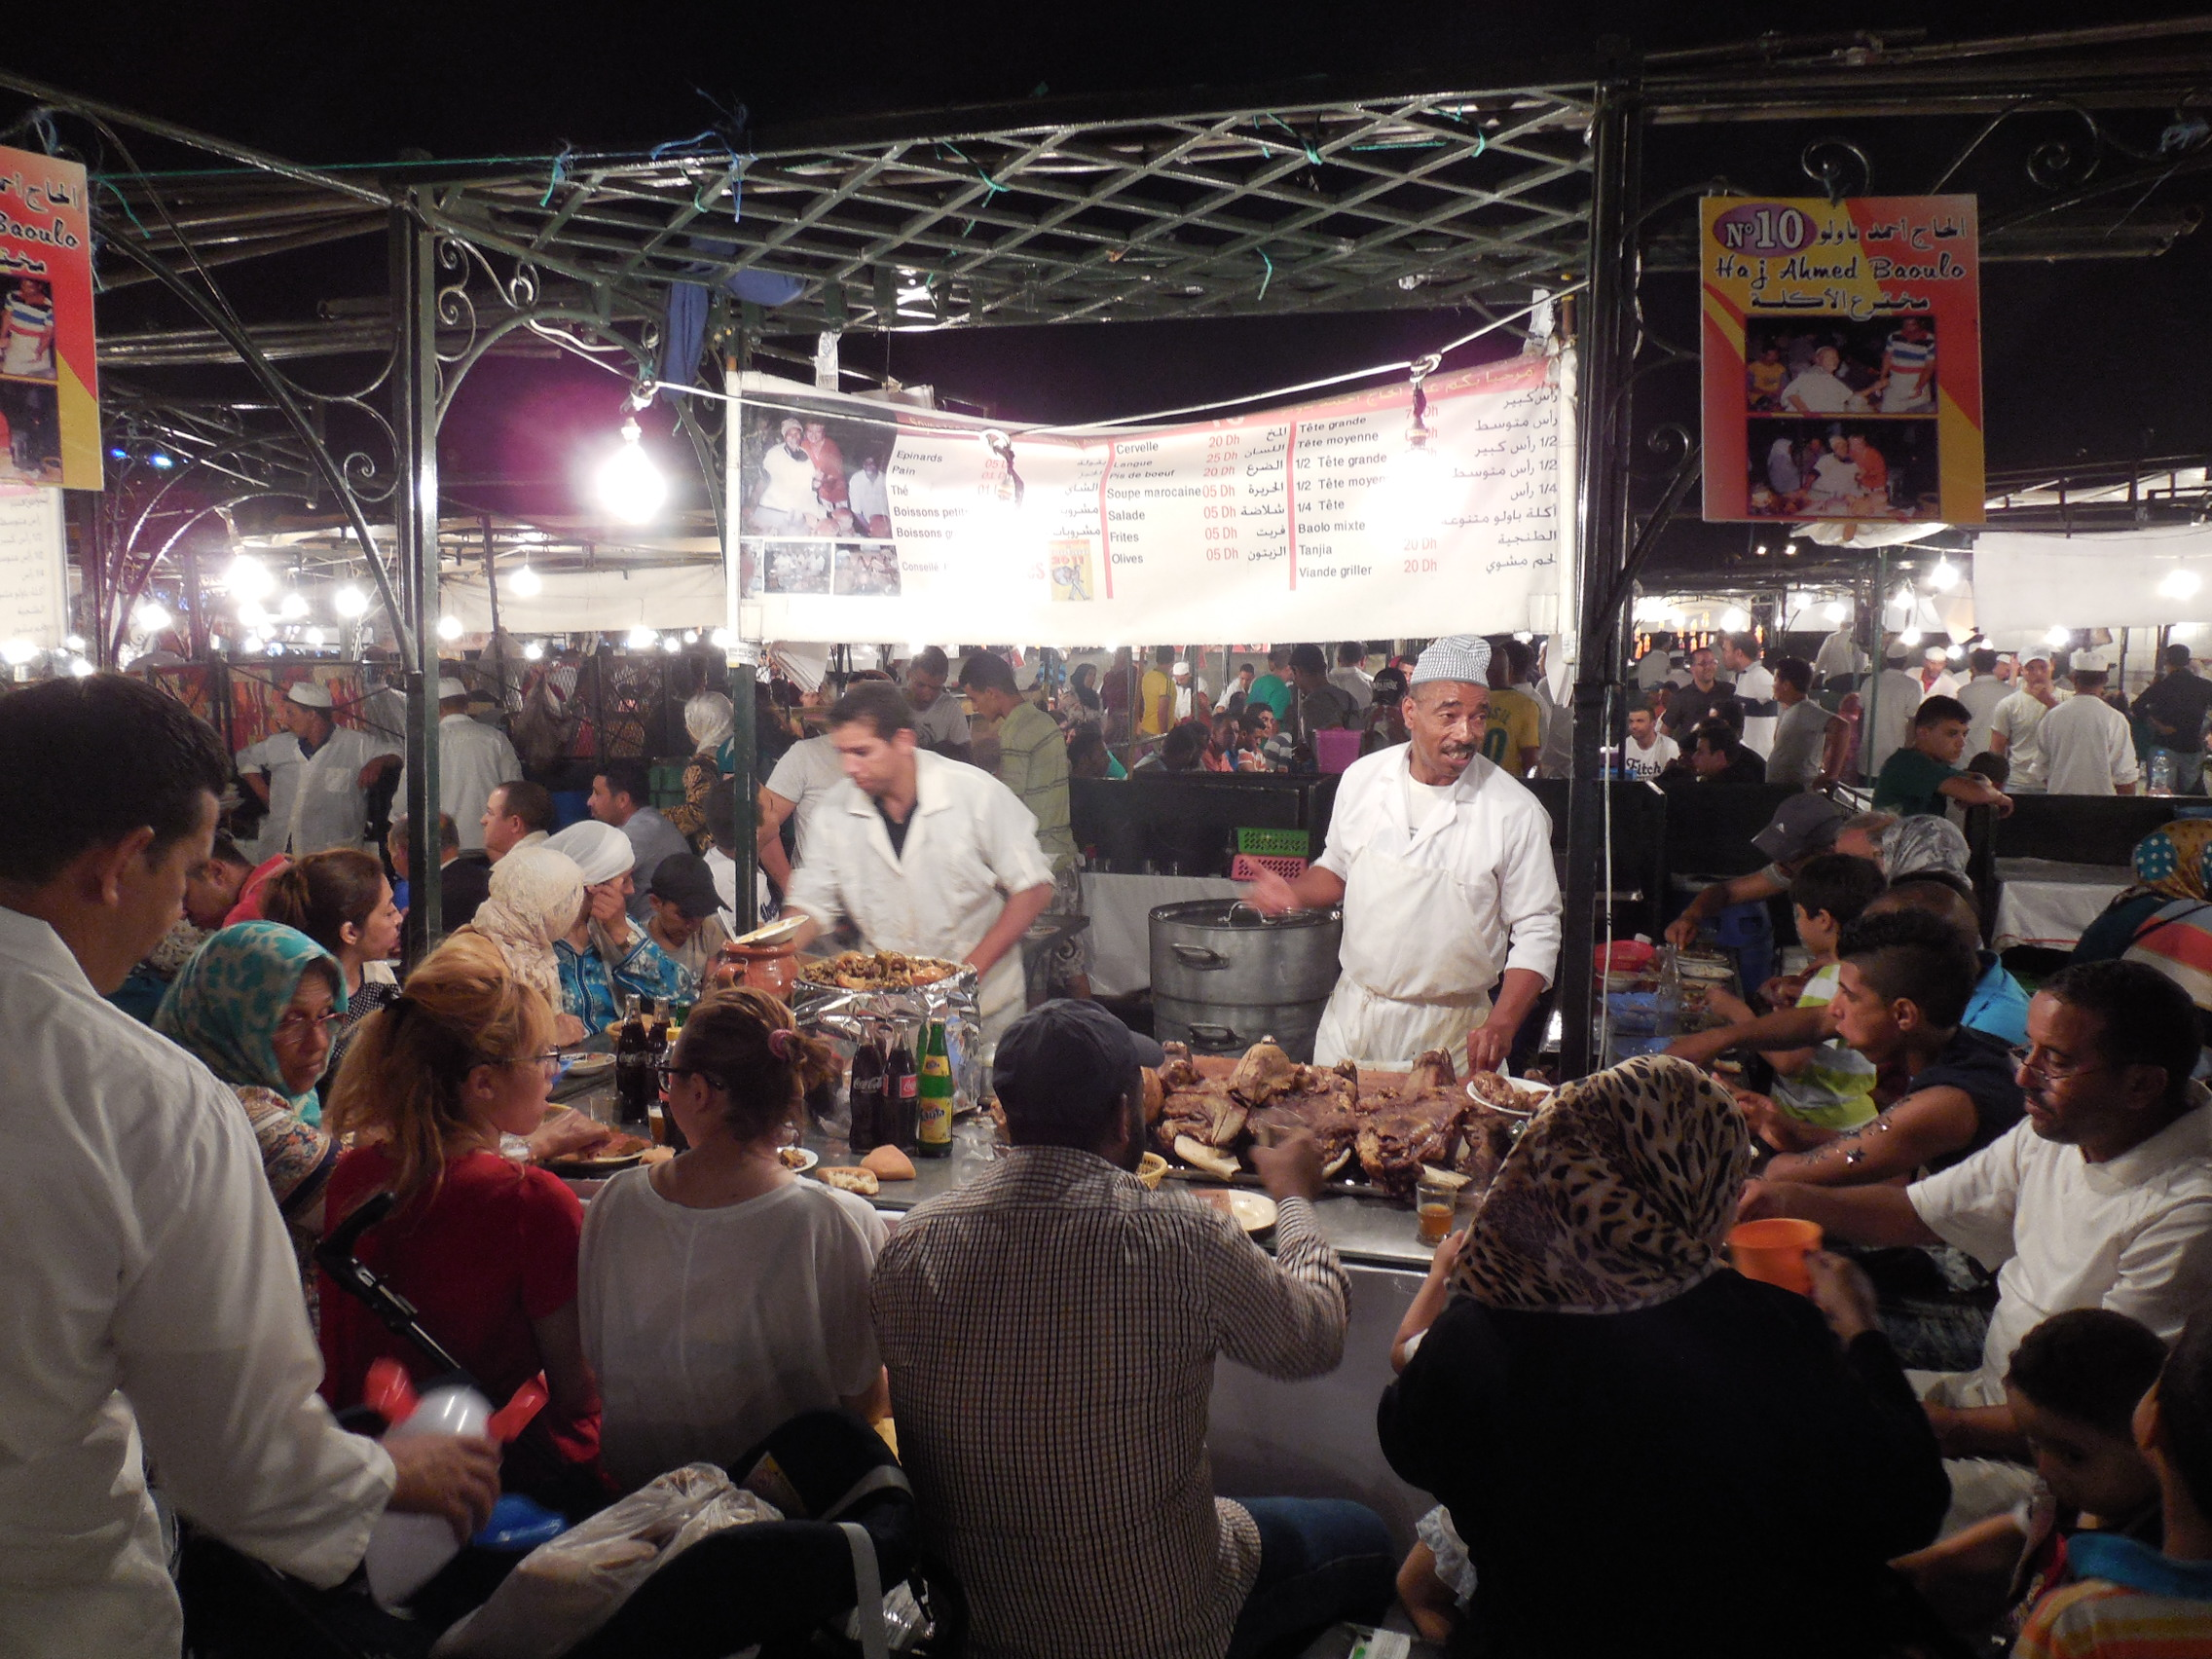 Jemaa el-Fna at night is packed